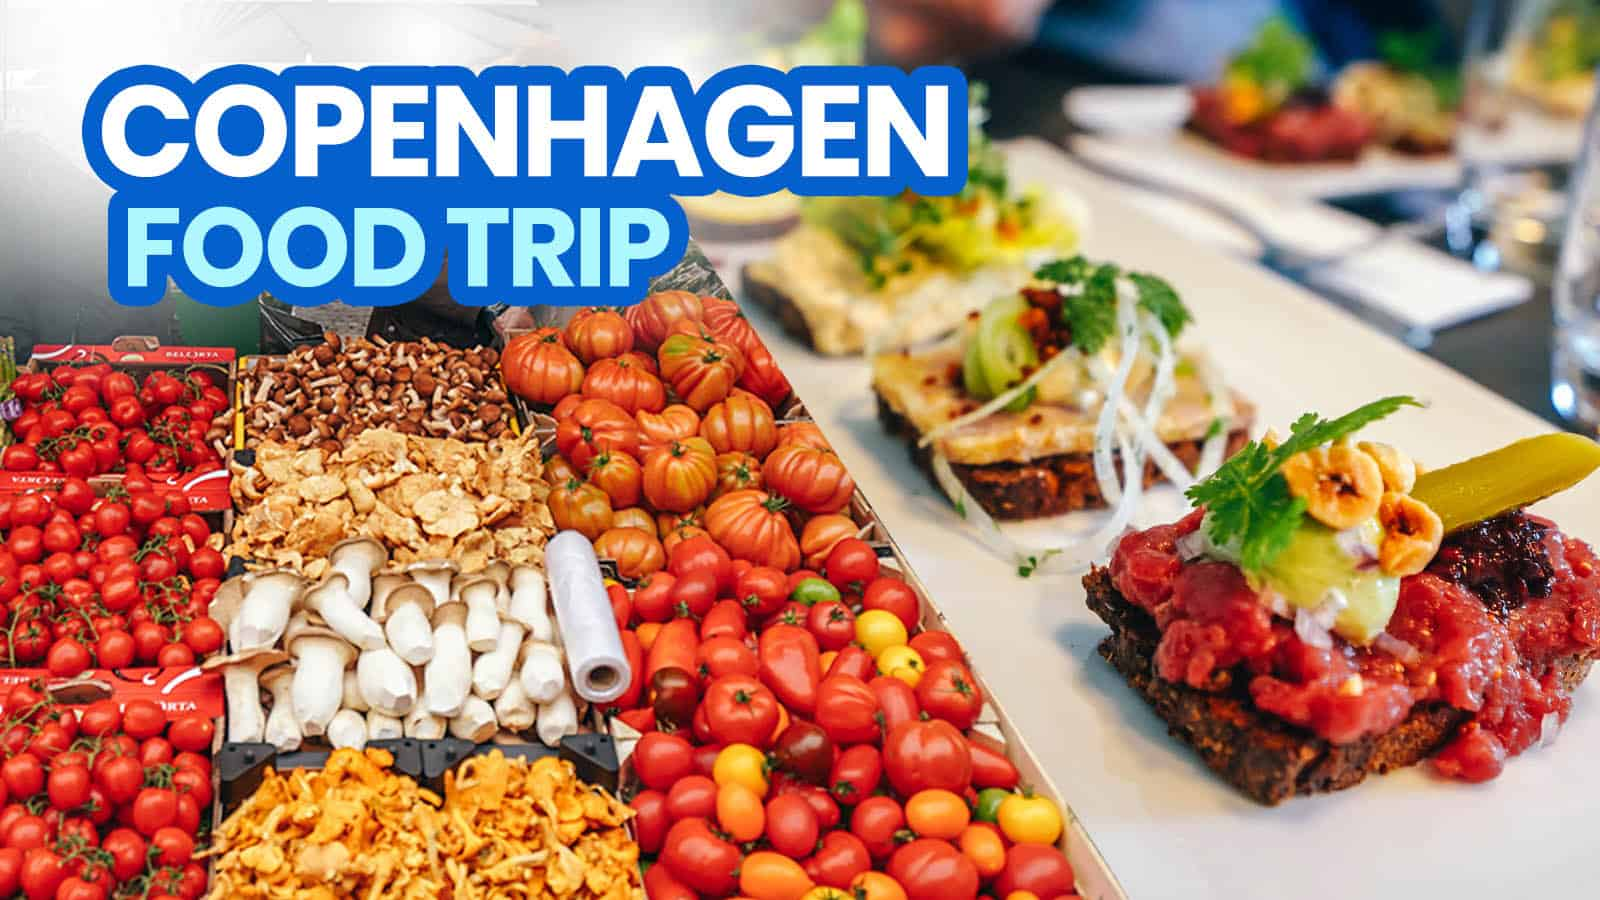 COPENHAGEN FOOD TOUR: 12 Dishes, Drinks & Restaurants to Try in the City